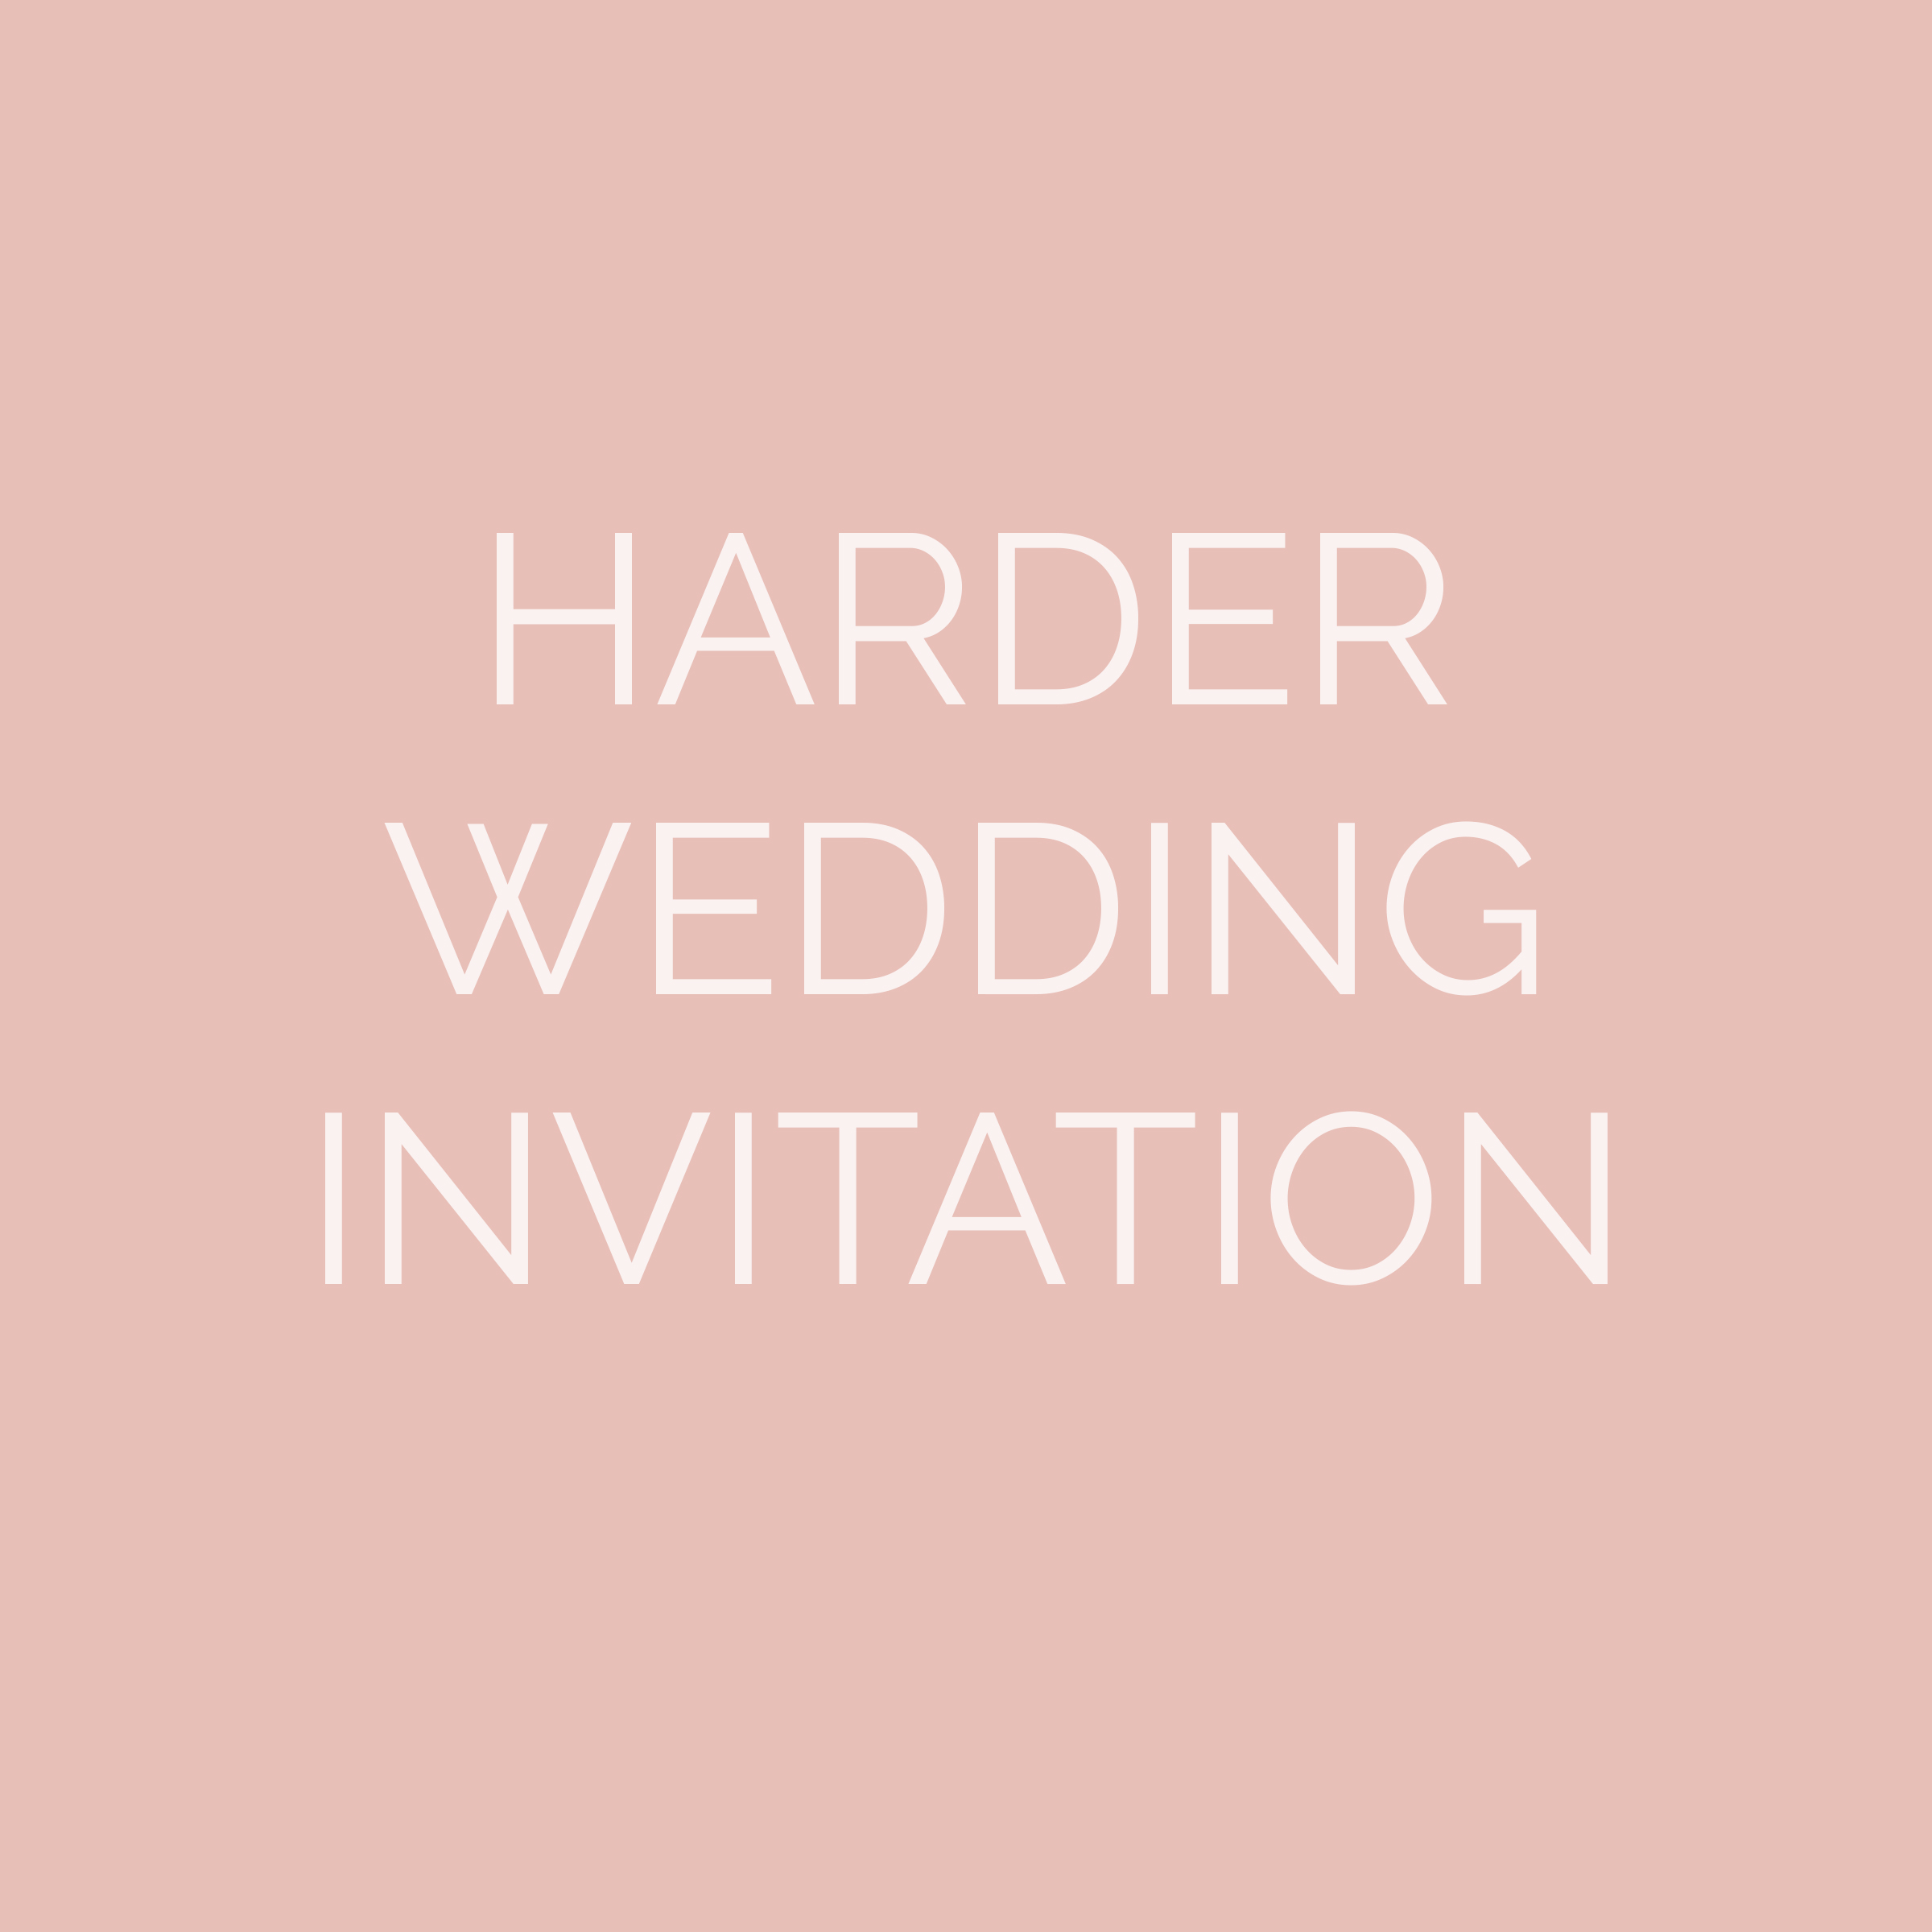 Harder Wedding Invitation 1.jpg